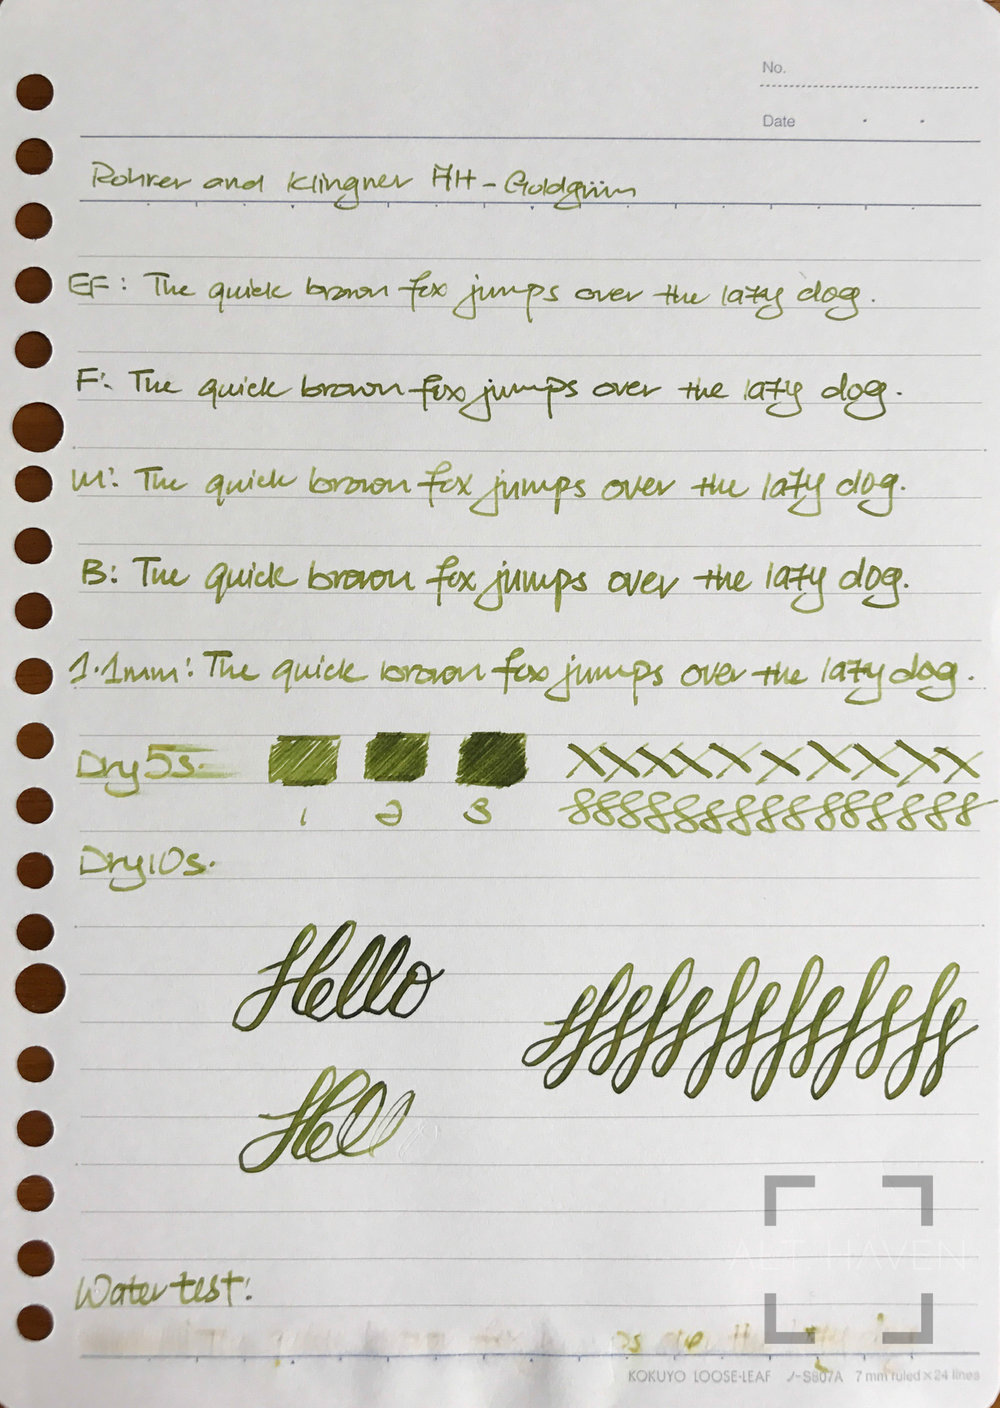 Rohrer and Klingner Alt Goldgrun 1.jpg